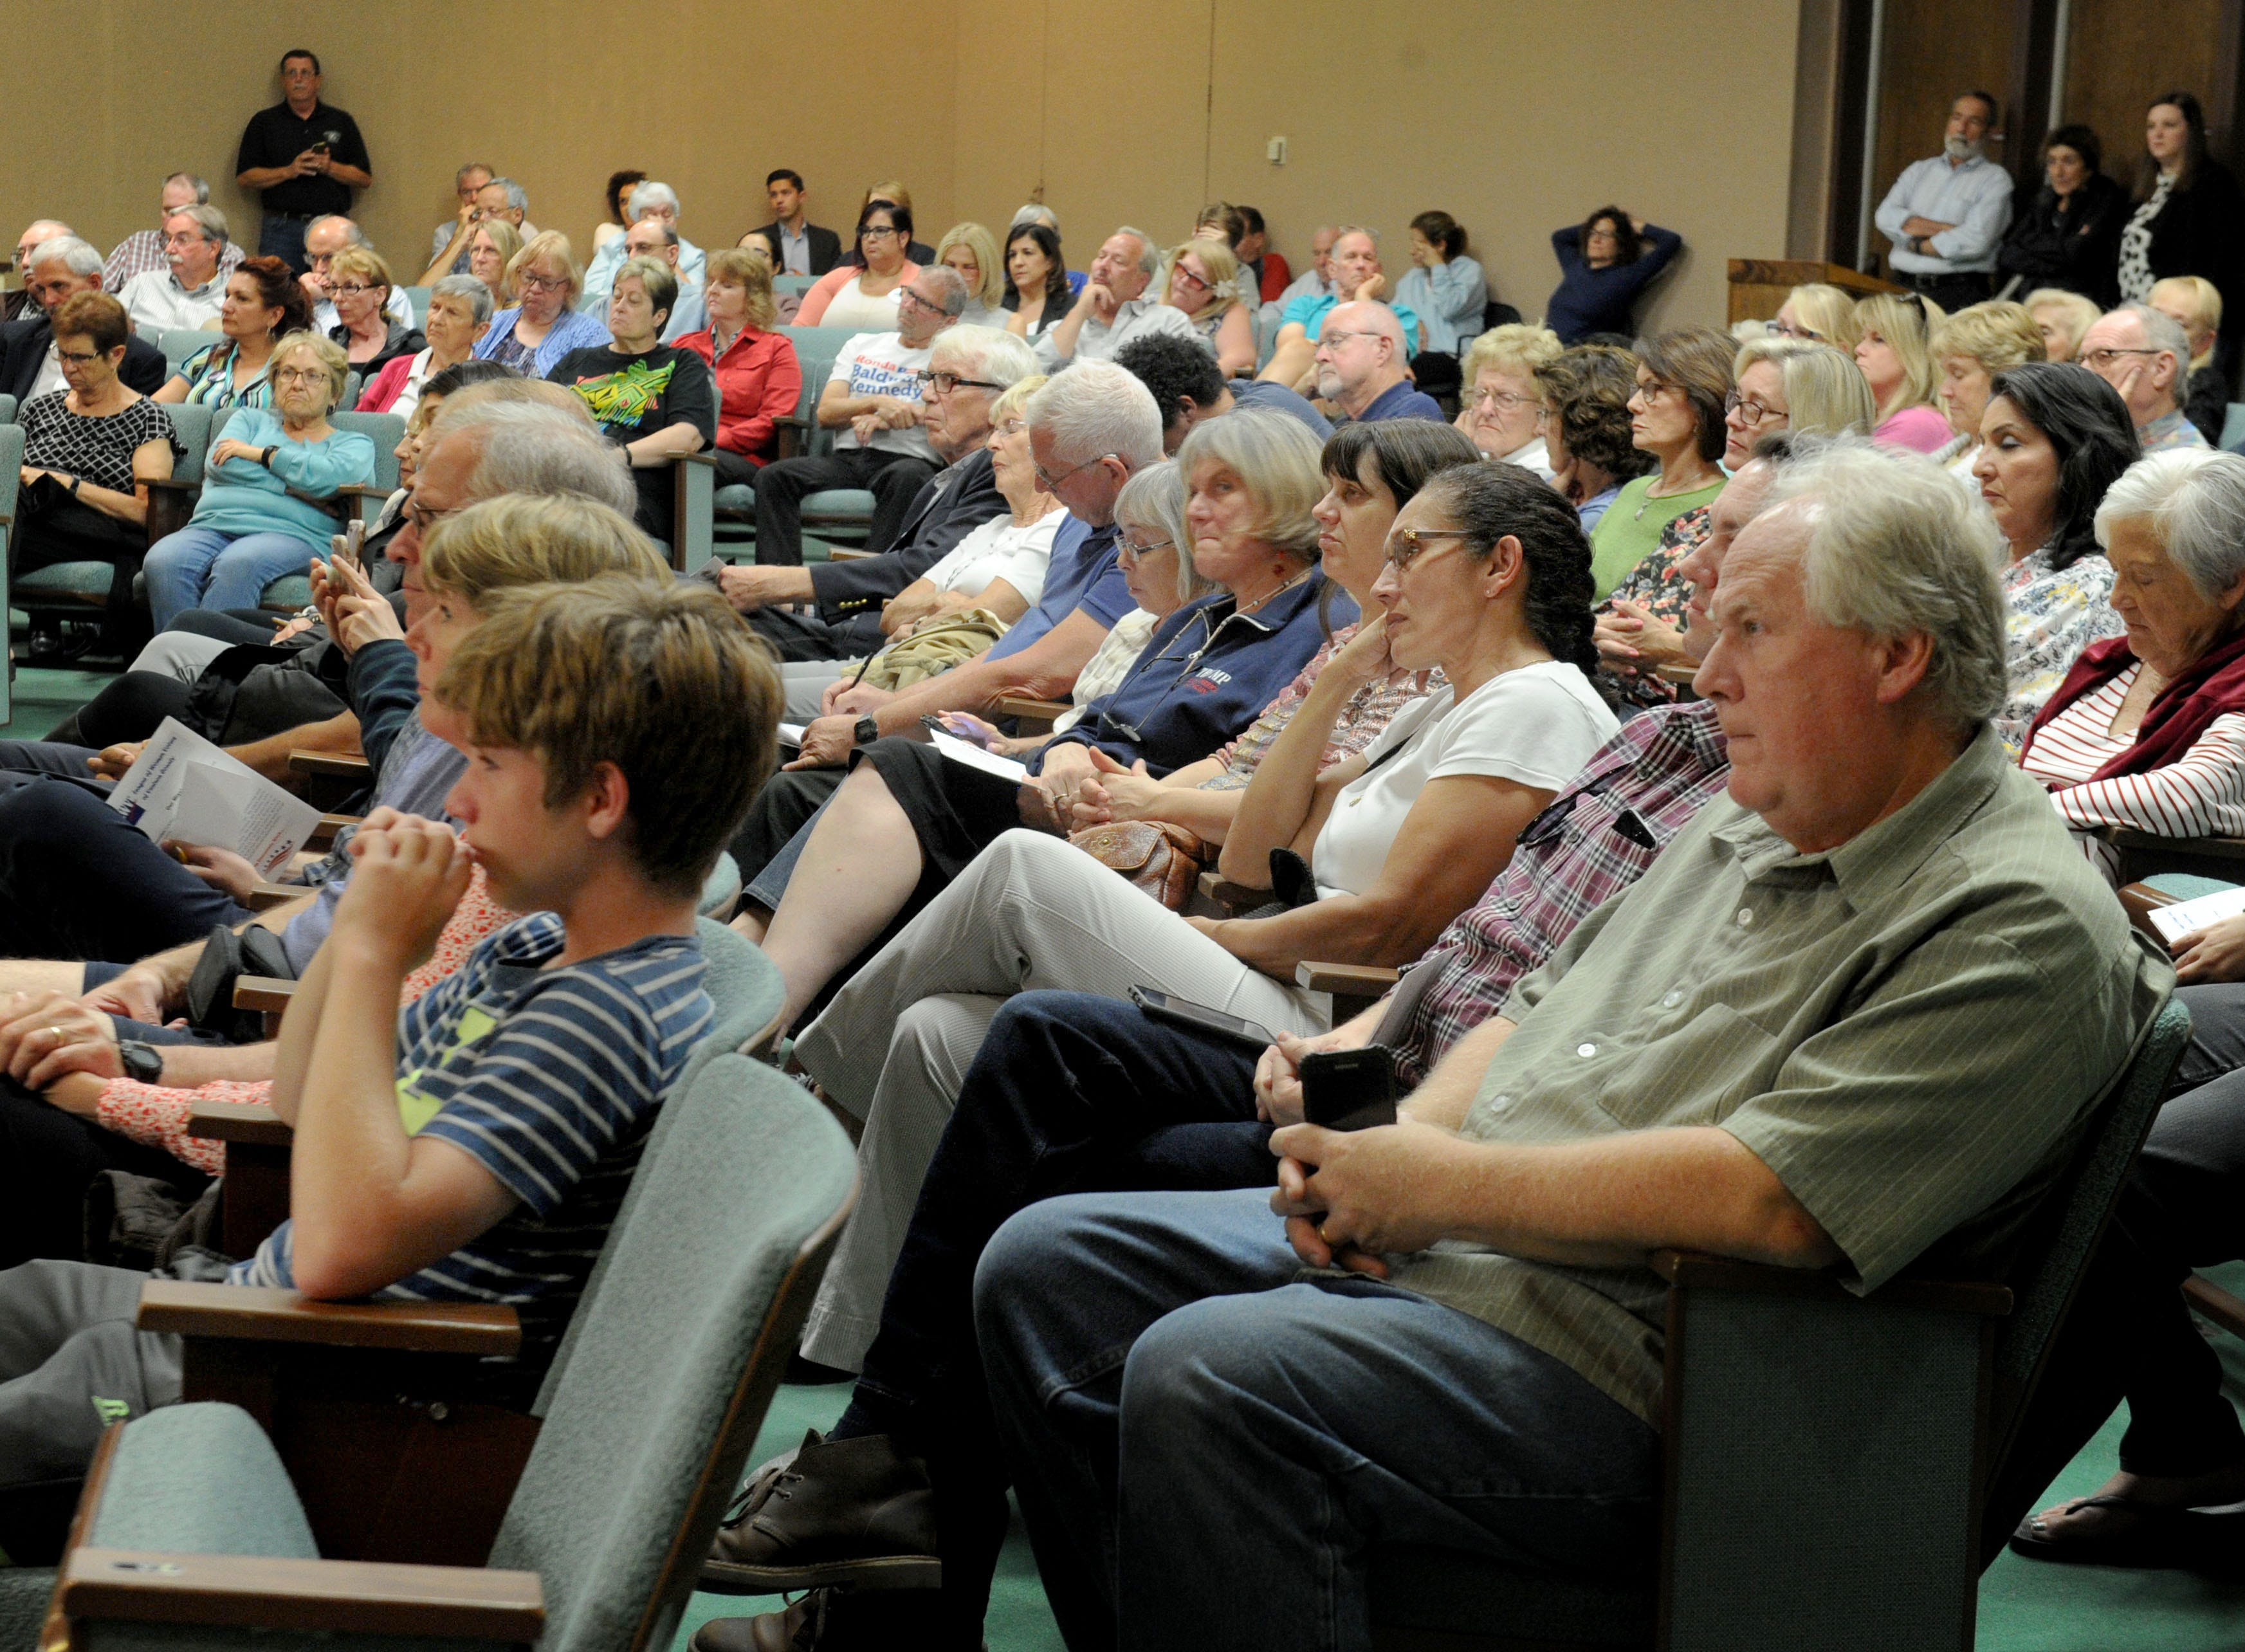 A large group of people gathered at Camarillo City Hall Tuesday night to hear the debate for the 44th Assembly District. Incumbent Jacqui Irwin, D-Thousand Oaks, faces challenger Ronda Baldwin-Kennedy, R-Oak Park.